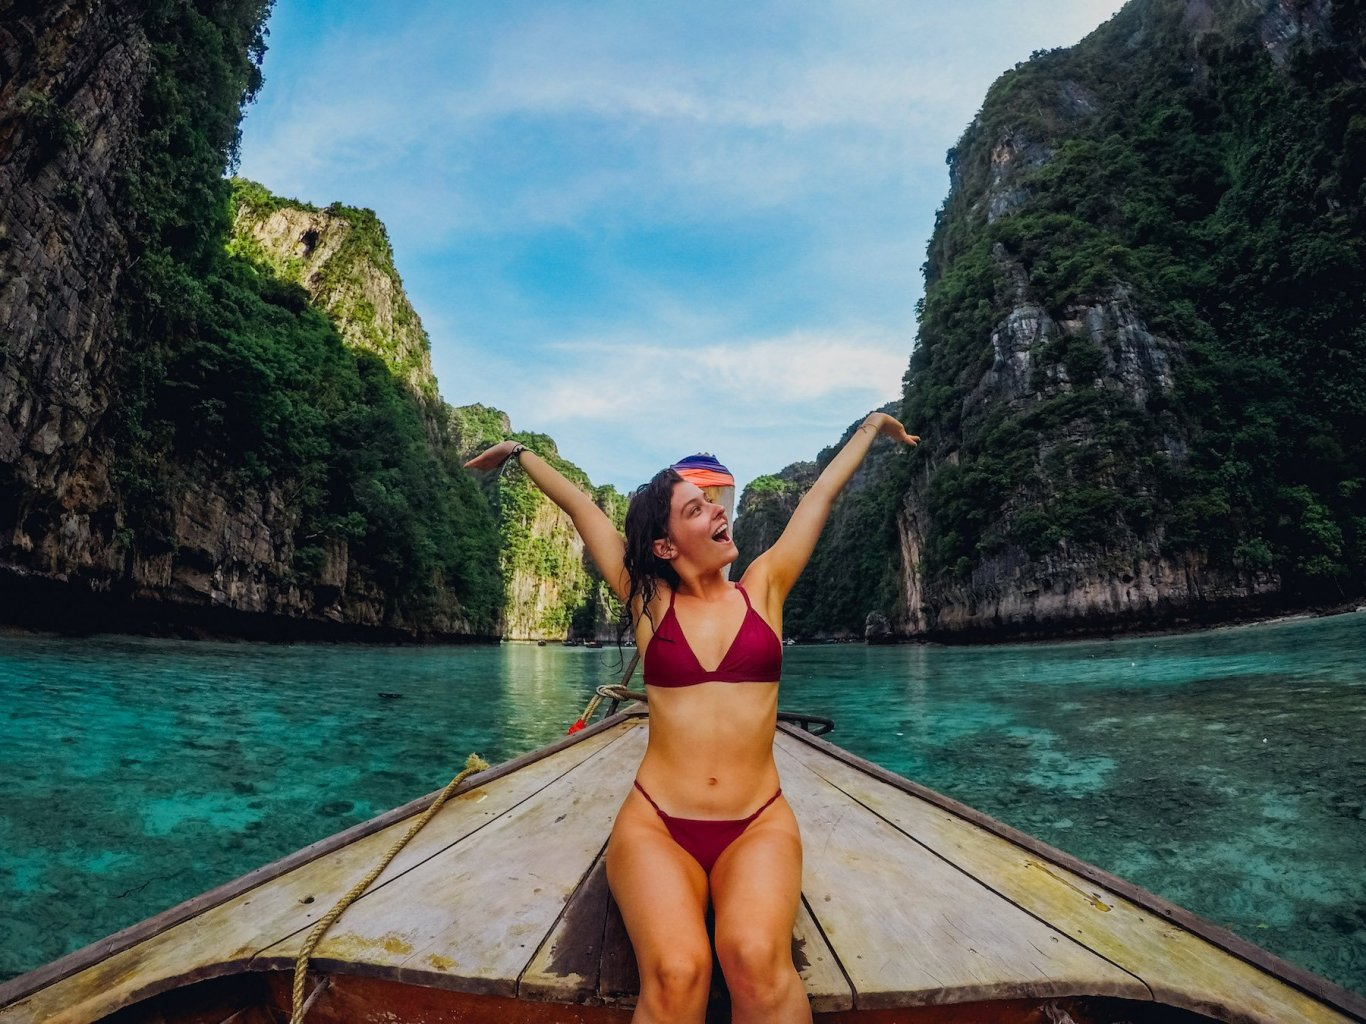 A girl on a boat at Maya bay in Koh Phi Phi Thailand